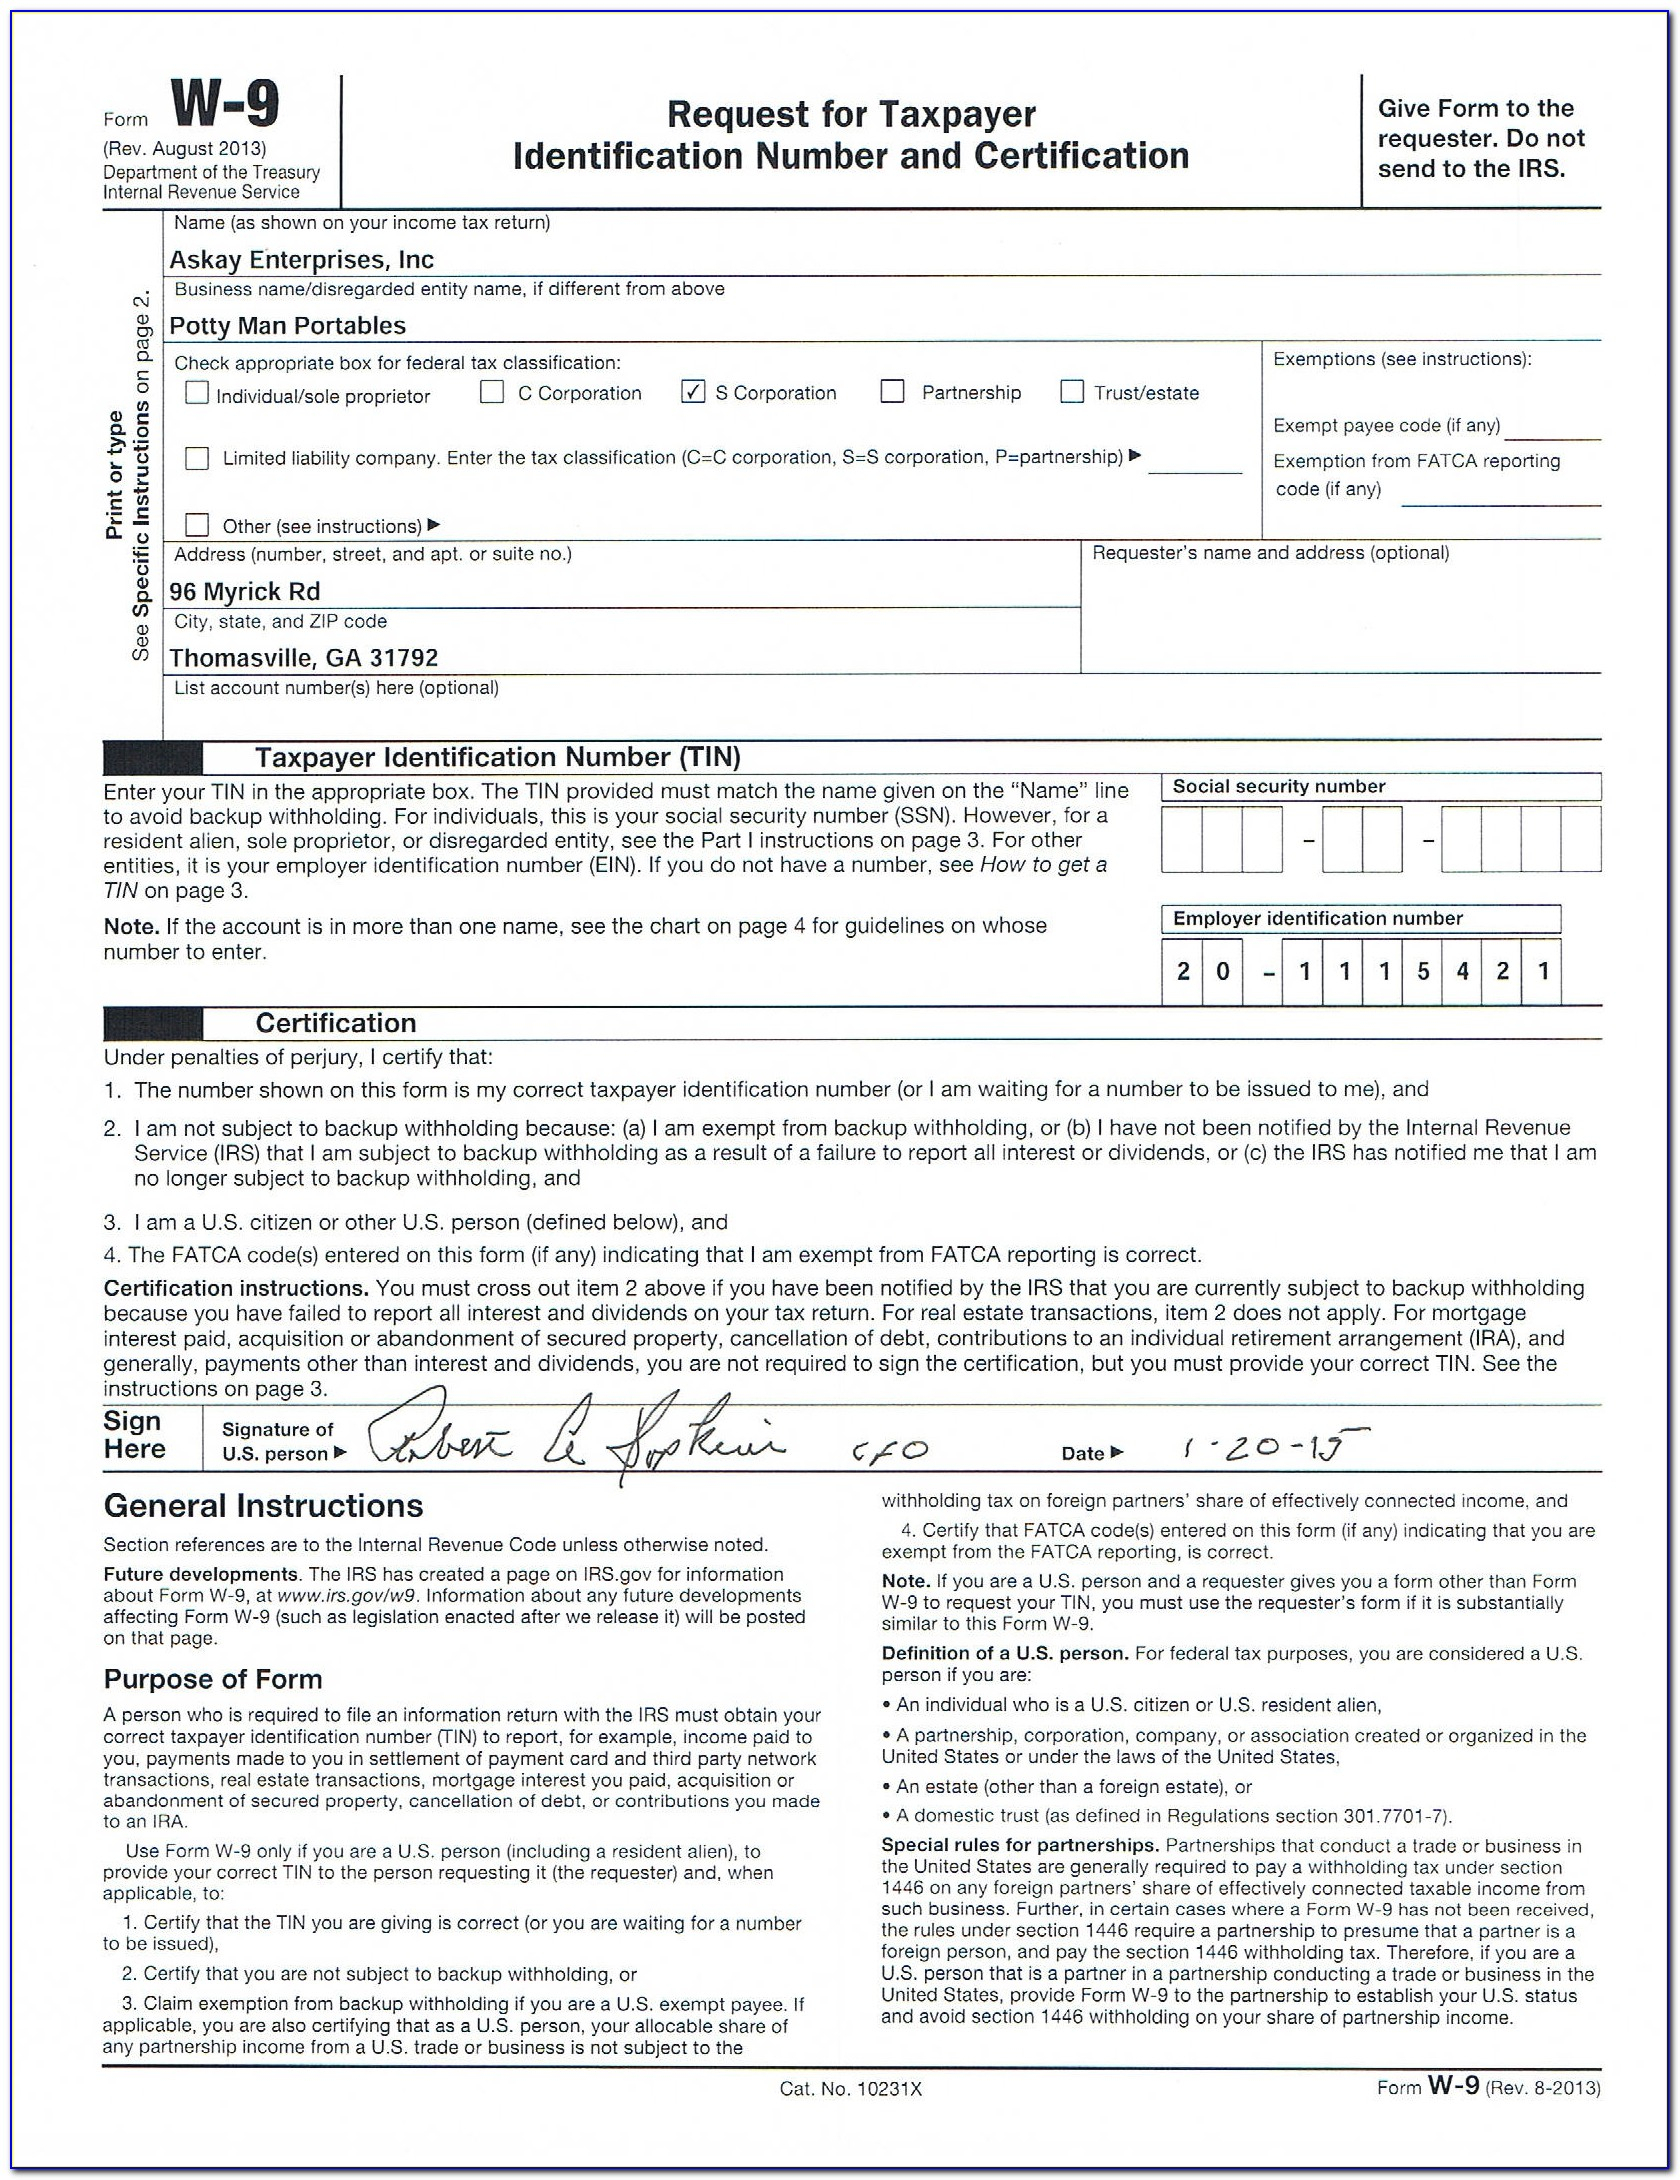 W9 Free Printable Form 2016 | Vincegray2014 for Free W 9 Form